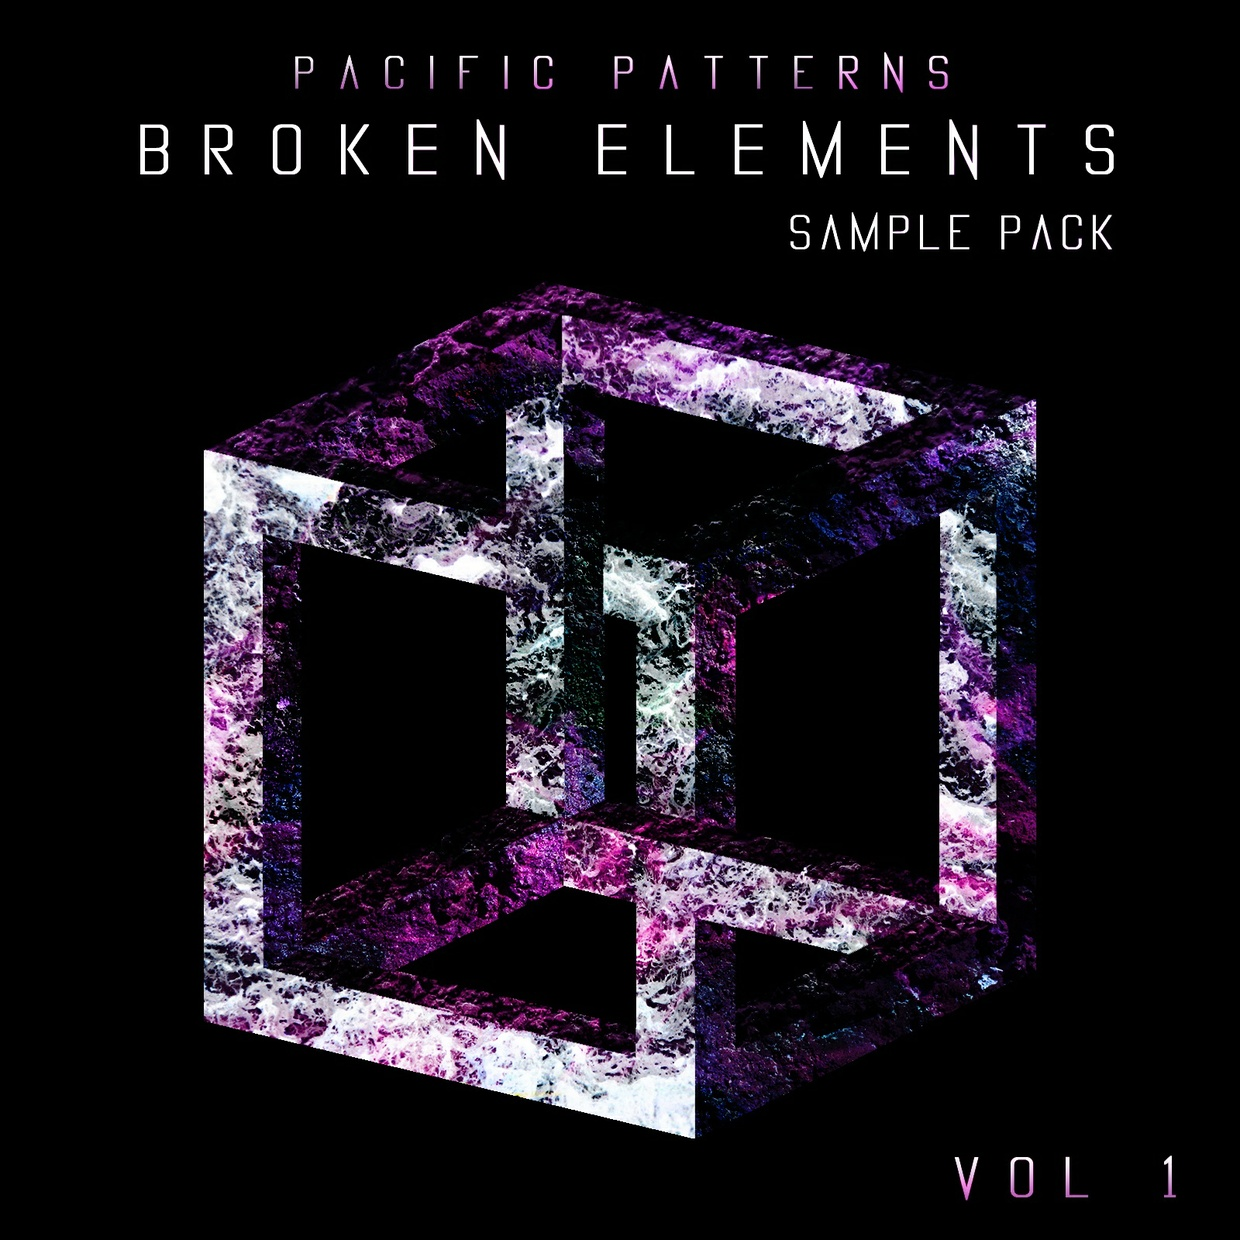 Pacific Patterns - Broken Elements Sample Pack